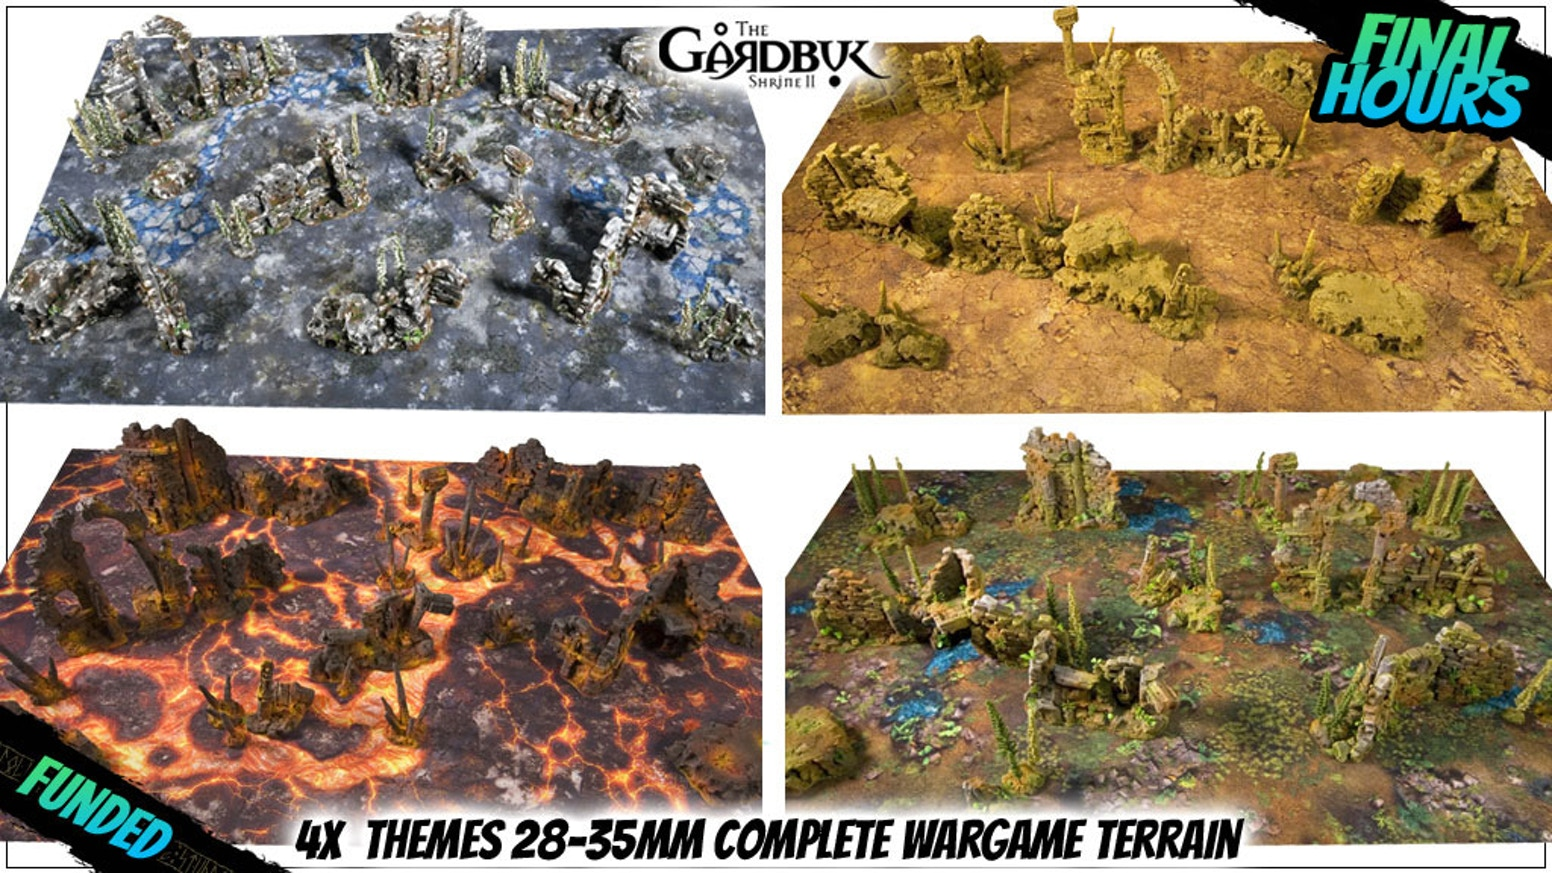 28-35mm miniature wargame models for casual and competitive battle. Various fully painted handmade terrain + double-sided game mats.